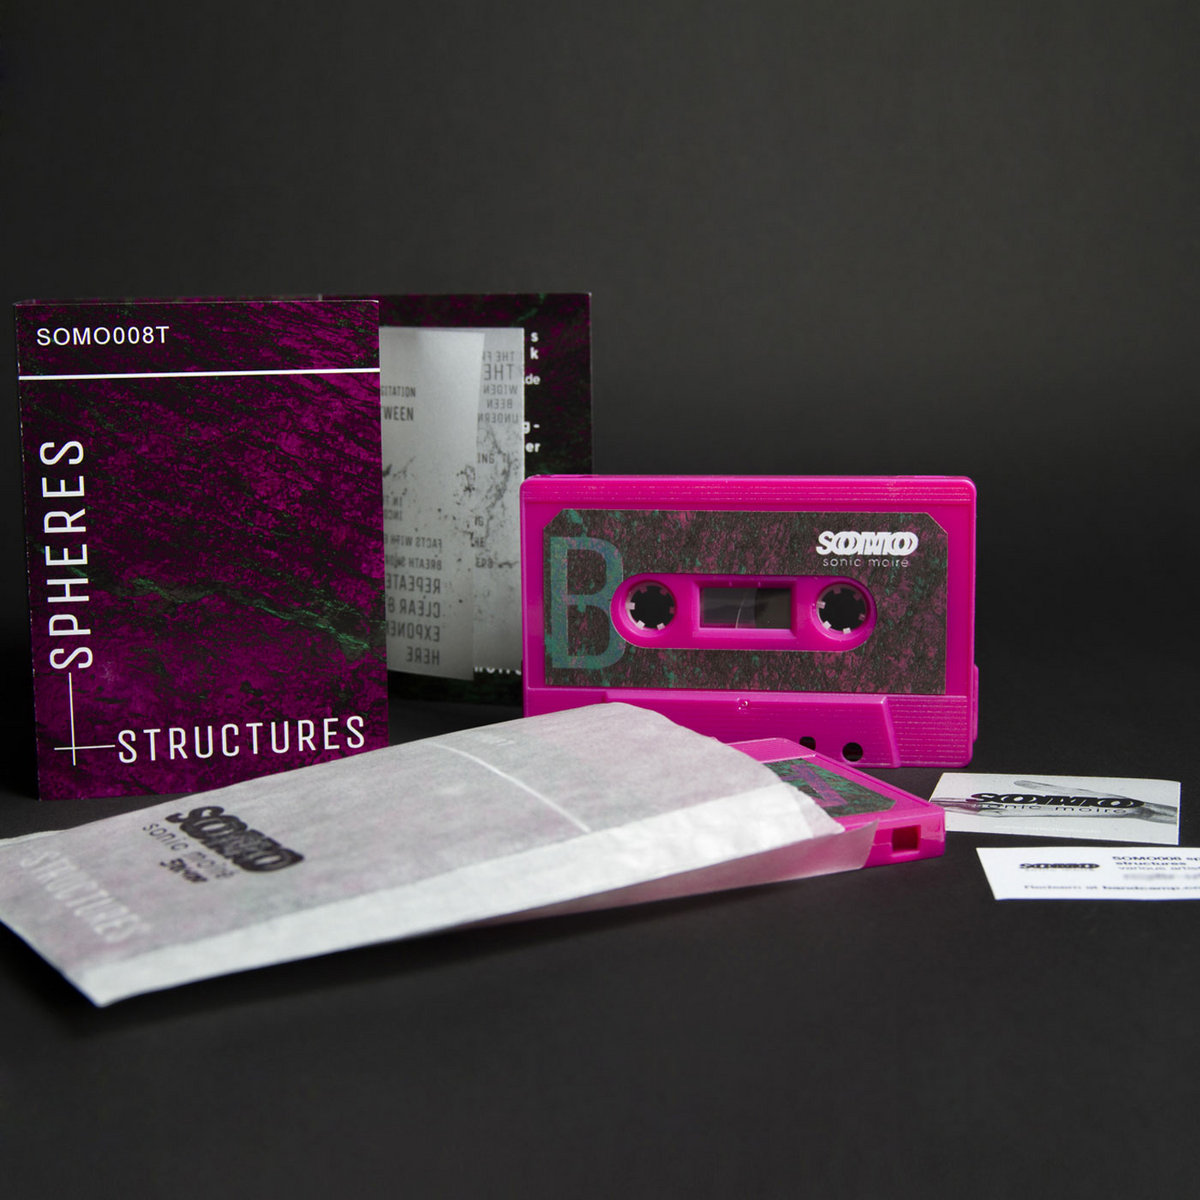 Somo008t Various Artists Spheres And Structures Sonic Moir Electronics Technology Pink Flicker Noise Generator Circuit By